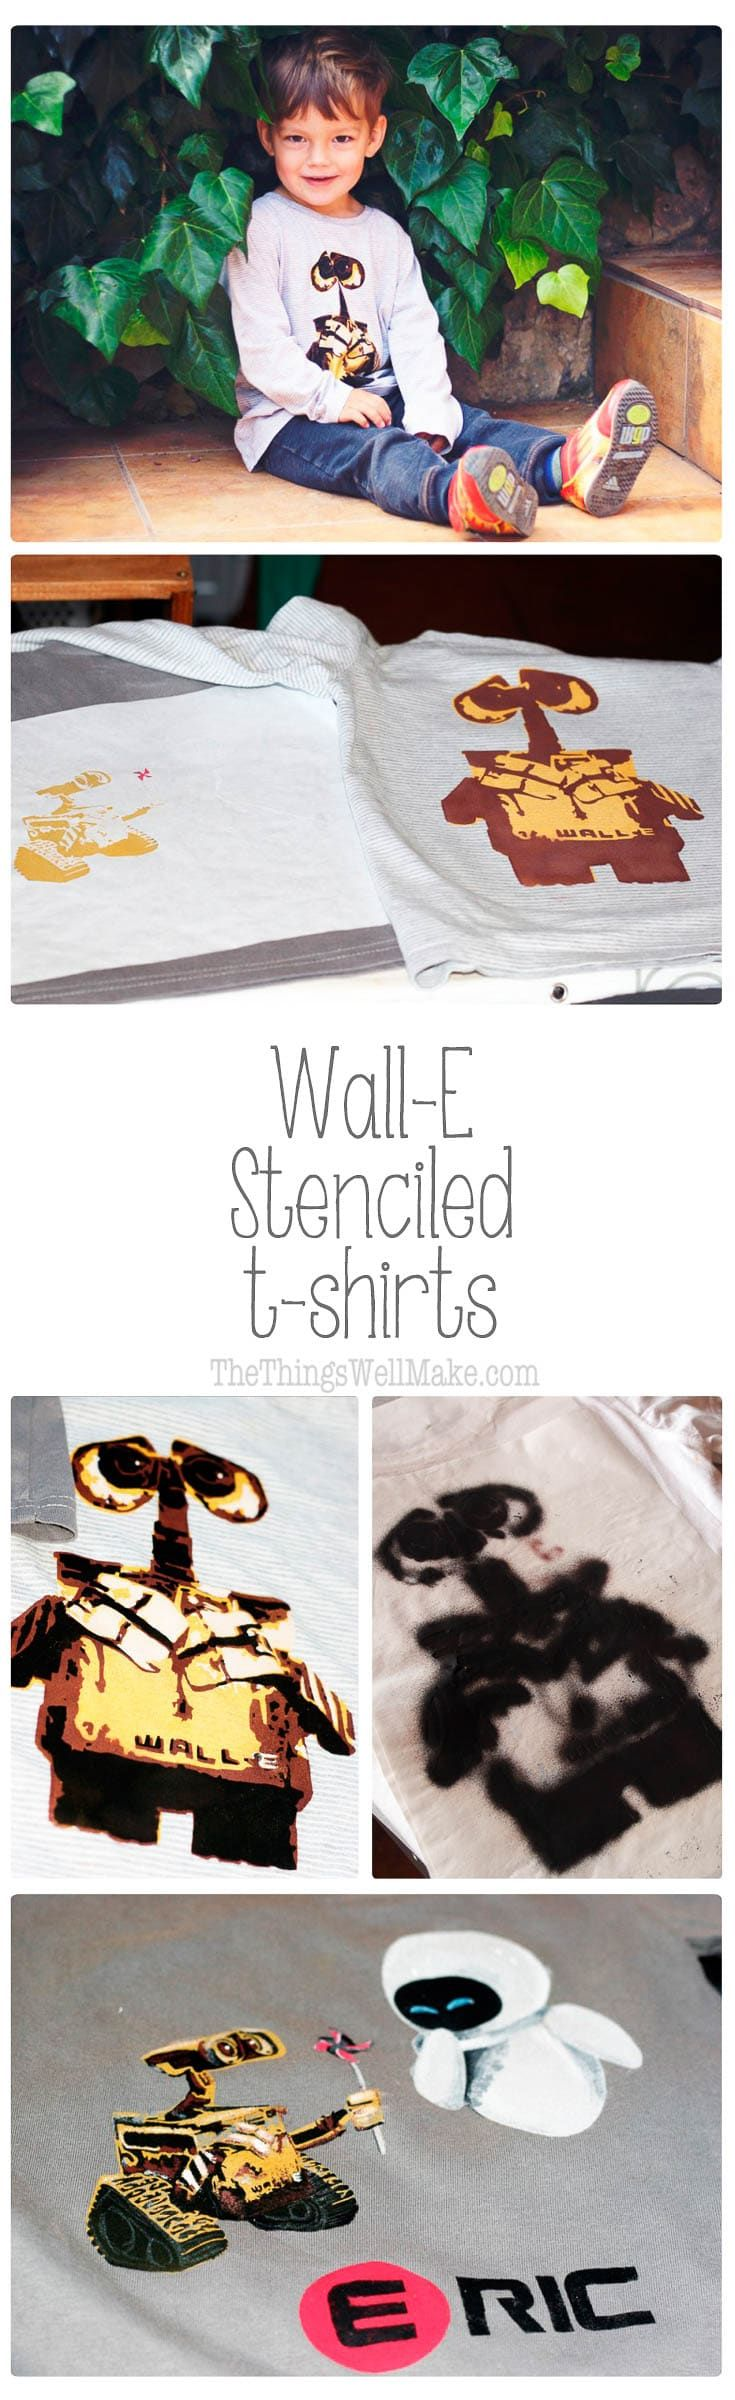 You can make fun and professional looking Wall-E and Eve t-shirts with these stencils, some freezer paper, and some fabric paints. #walle #eve #disney #stencils #tshirts #fabricpaint